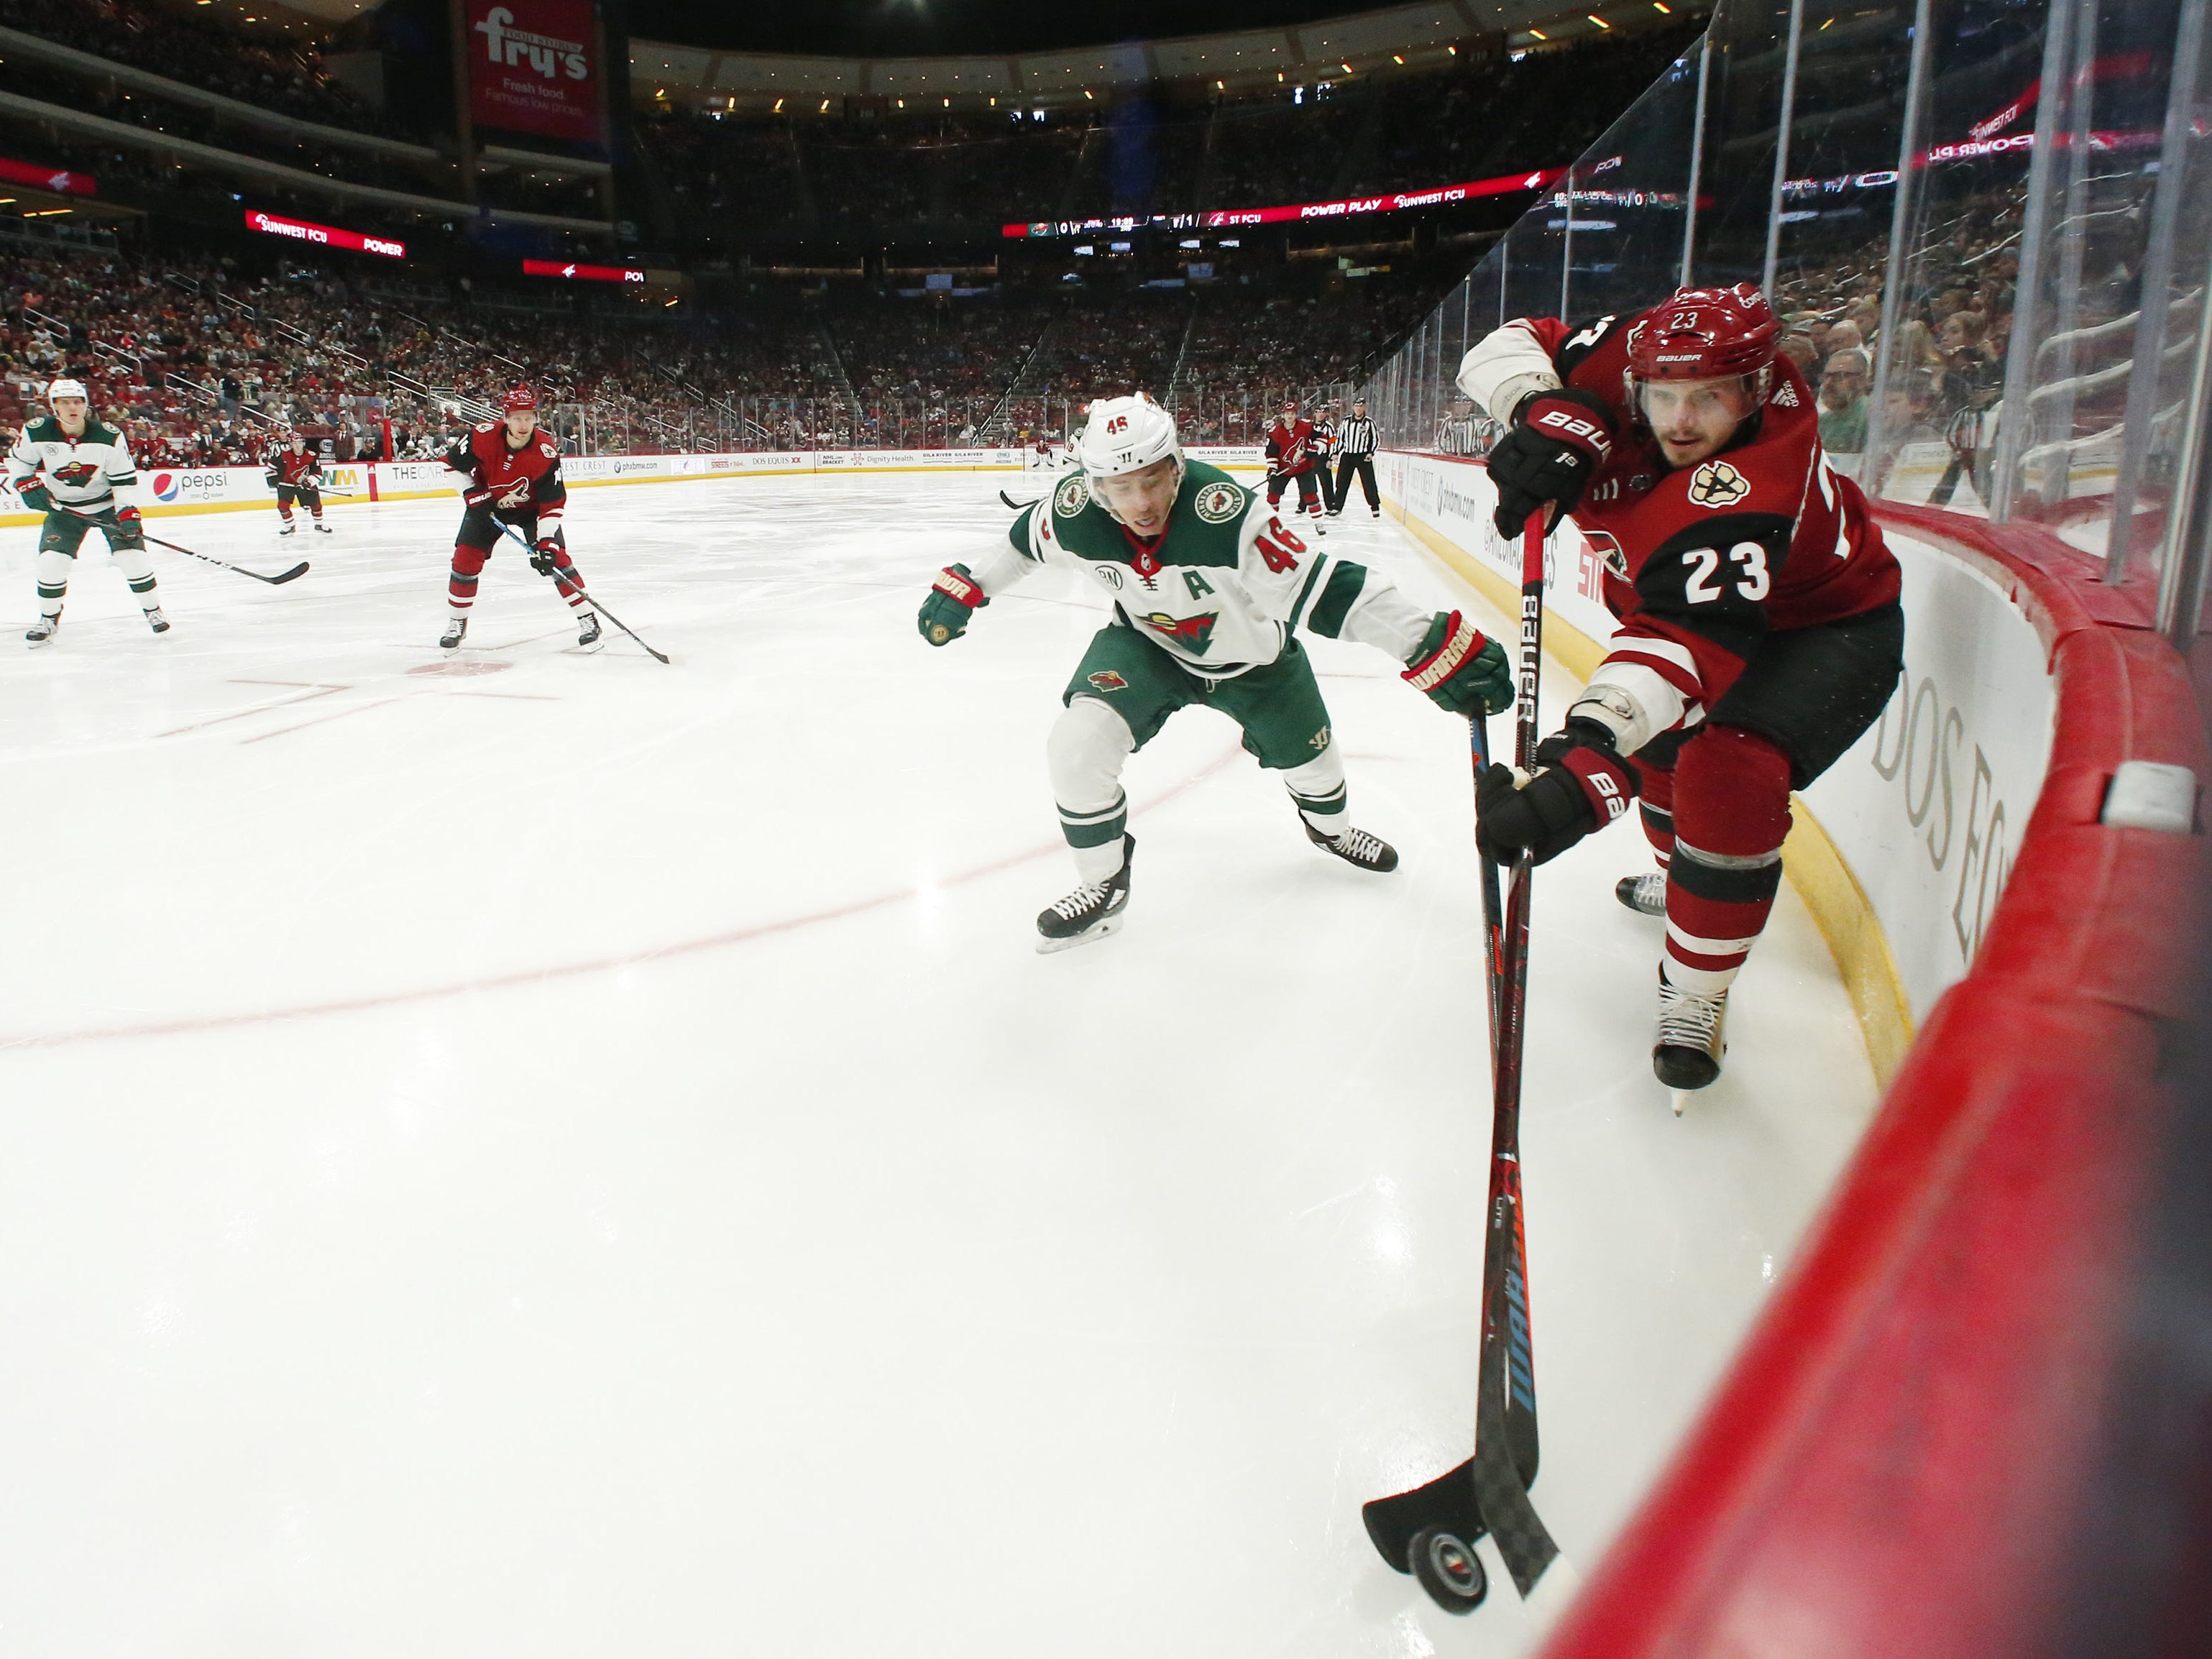 Arizona Coyotes defenseman Oliver Ekman-Larsson (23) works the puck away from Minnesota Wild defenseman Jared Spurgeon (46) during the second period in Glendale March 31, 2019.